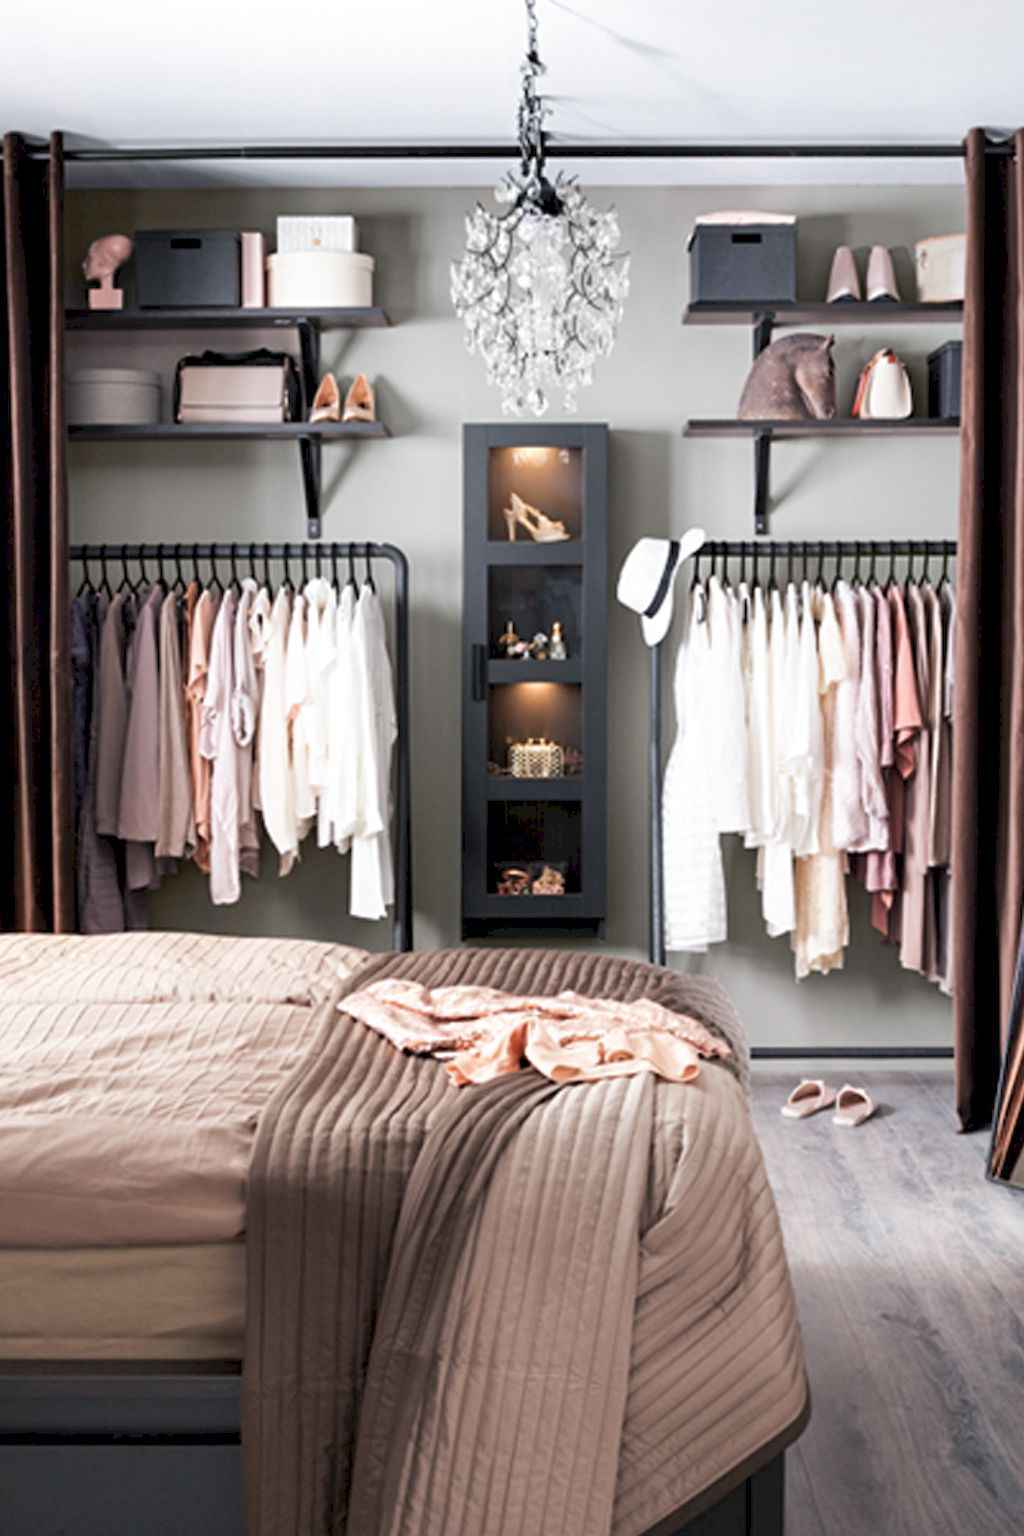 Awesome bedroom decoration ideas (41)